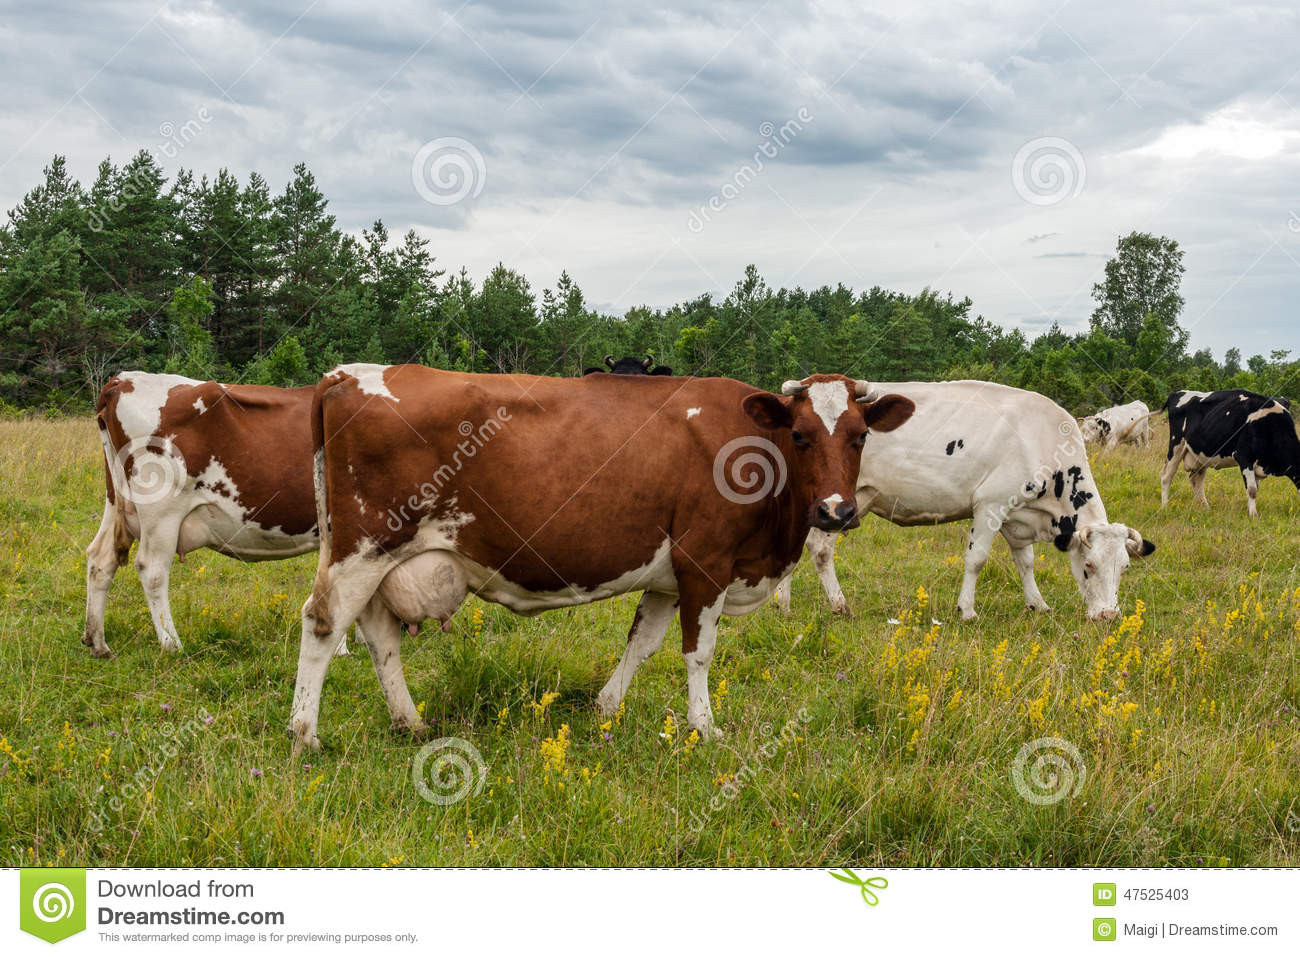 Download Milk Cows on Pasture Land stock image. Image of pasture - 47525403